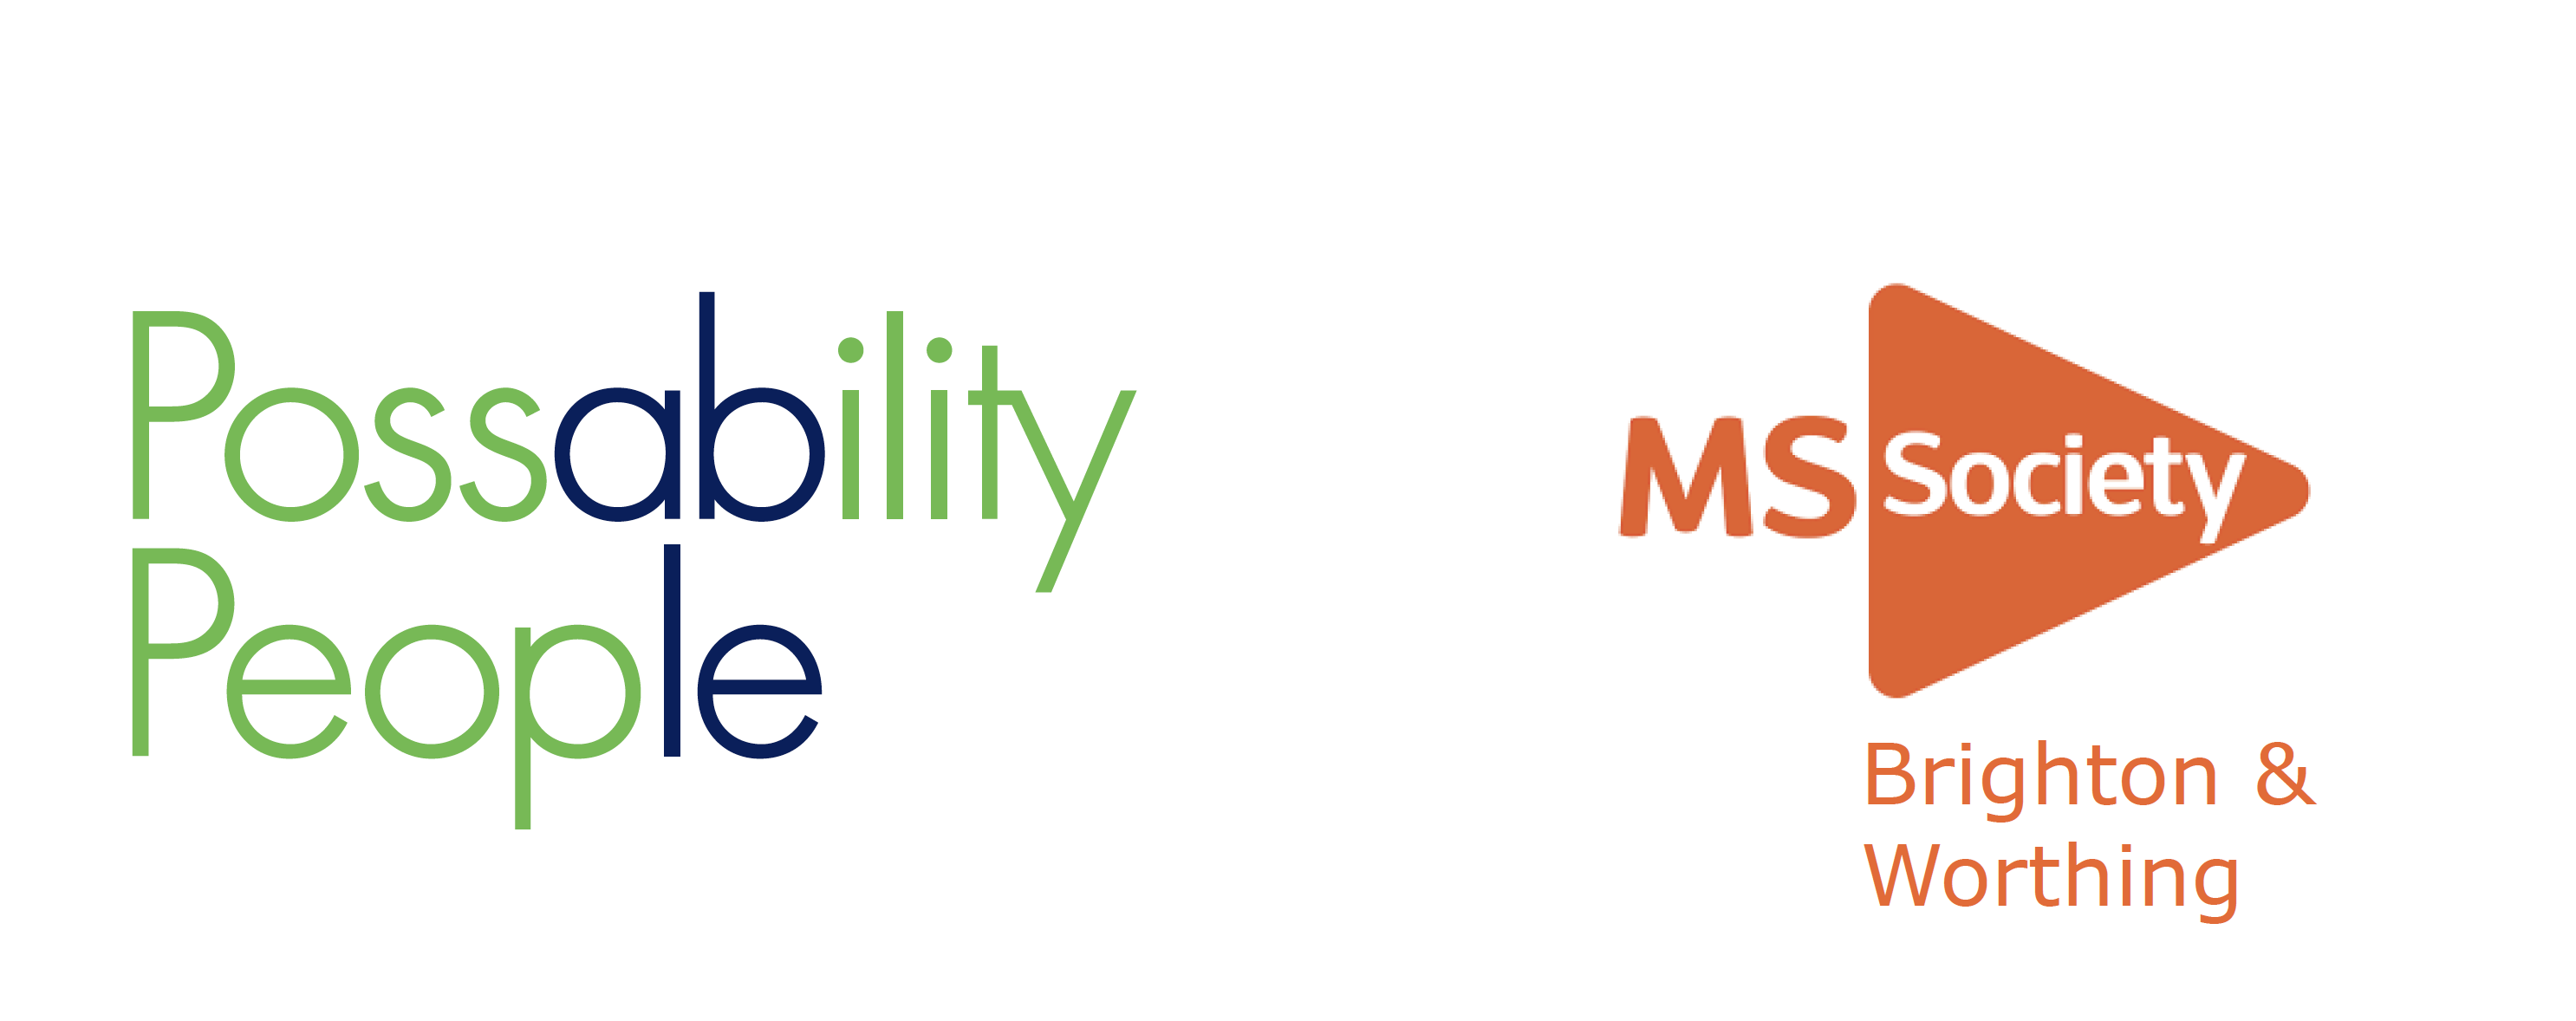 Logos, MS Society and Possability People